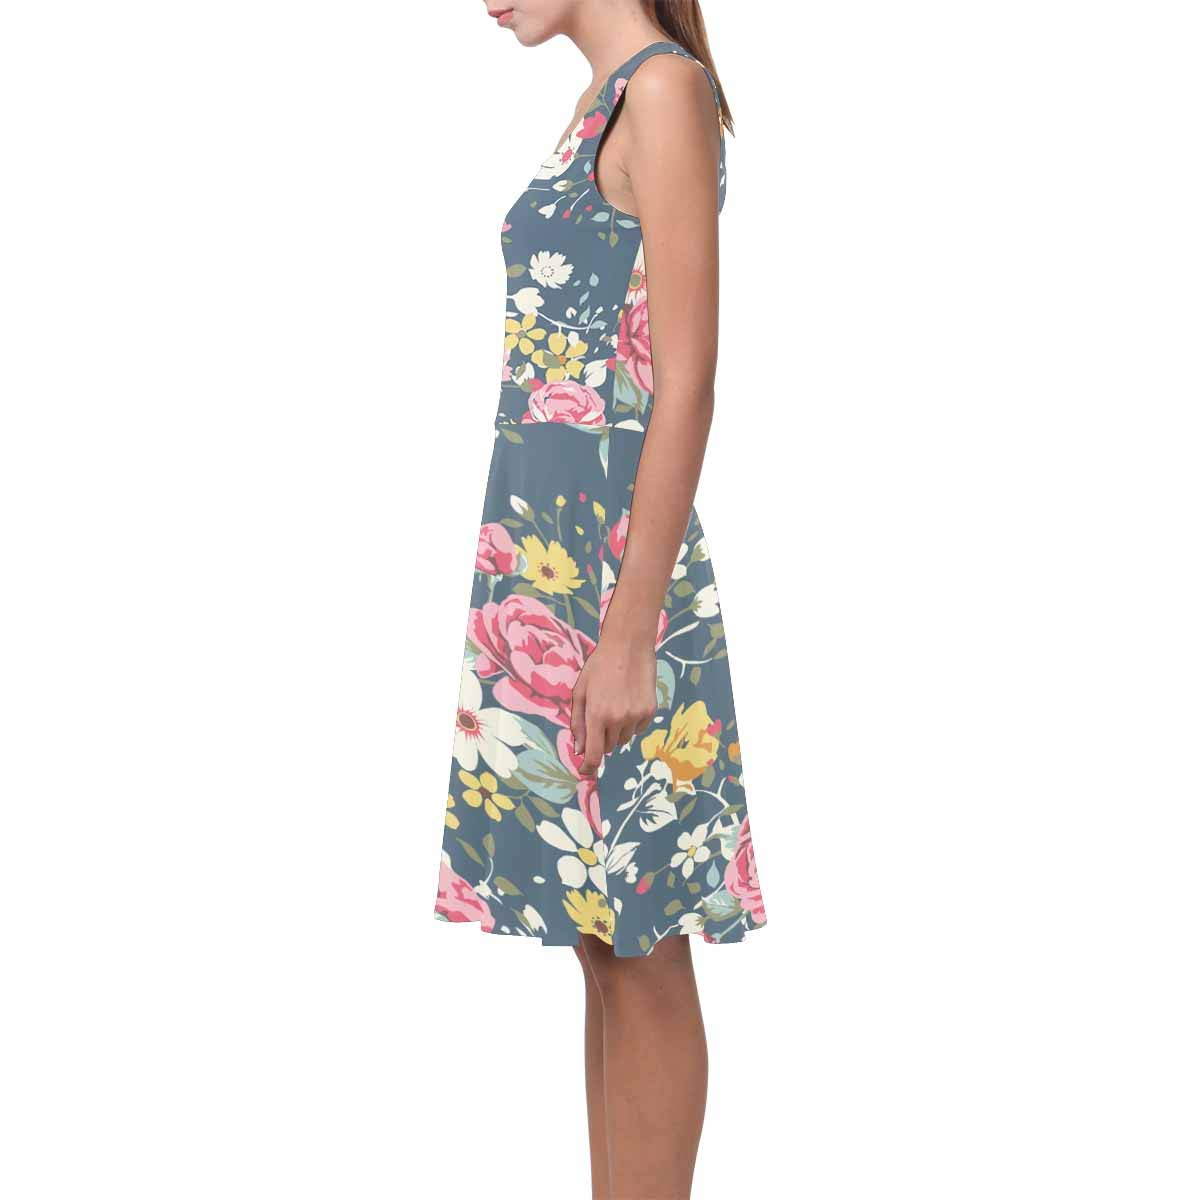 XS-3XL InterestPrint Womens Casual Tank Dresses Vintage Rose Pattern Sleeveless Swing Sundress